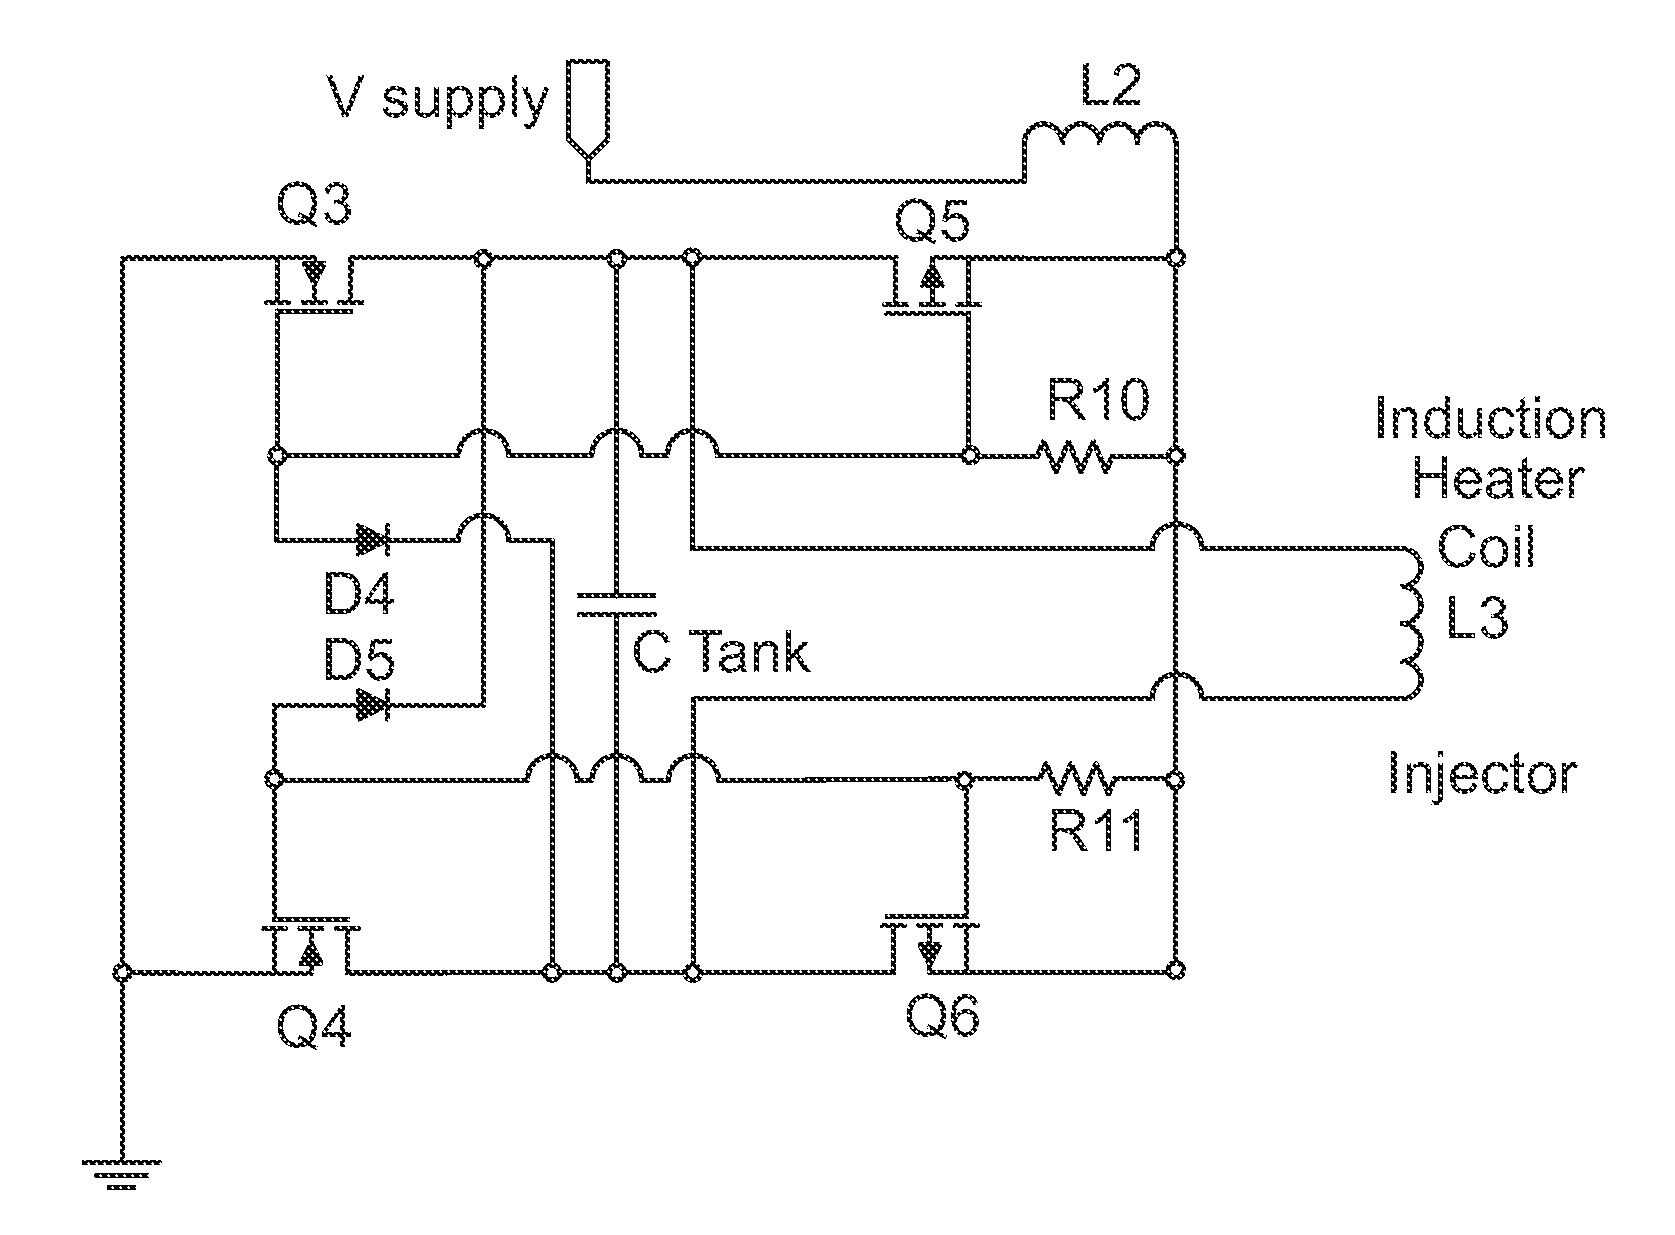 Simple Induction Heater Circuit Hot furthermore What Is The Output Voltage Of This 555 Timer High Voltage Circuit furthermore Simple Induction Heater Circuit Hot additionally Pl509pl519 Half Bridge Base Driven Coil additionally Danyk cz induk. on high frequency induction heating schematic